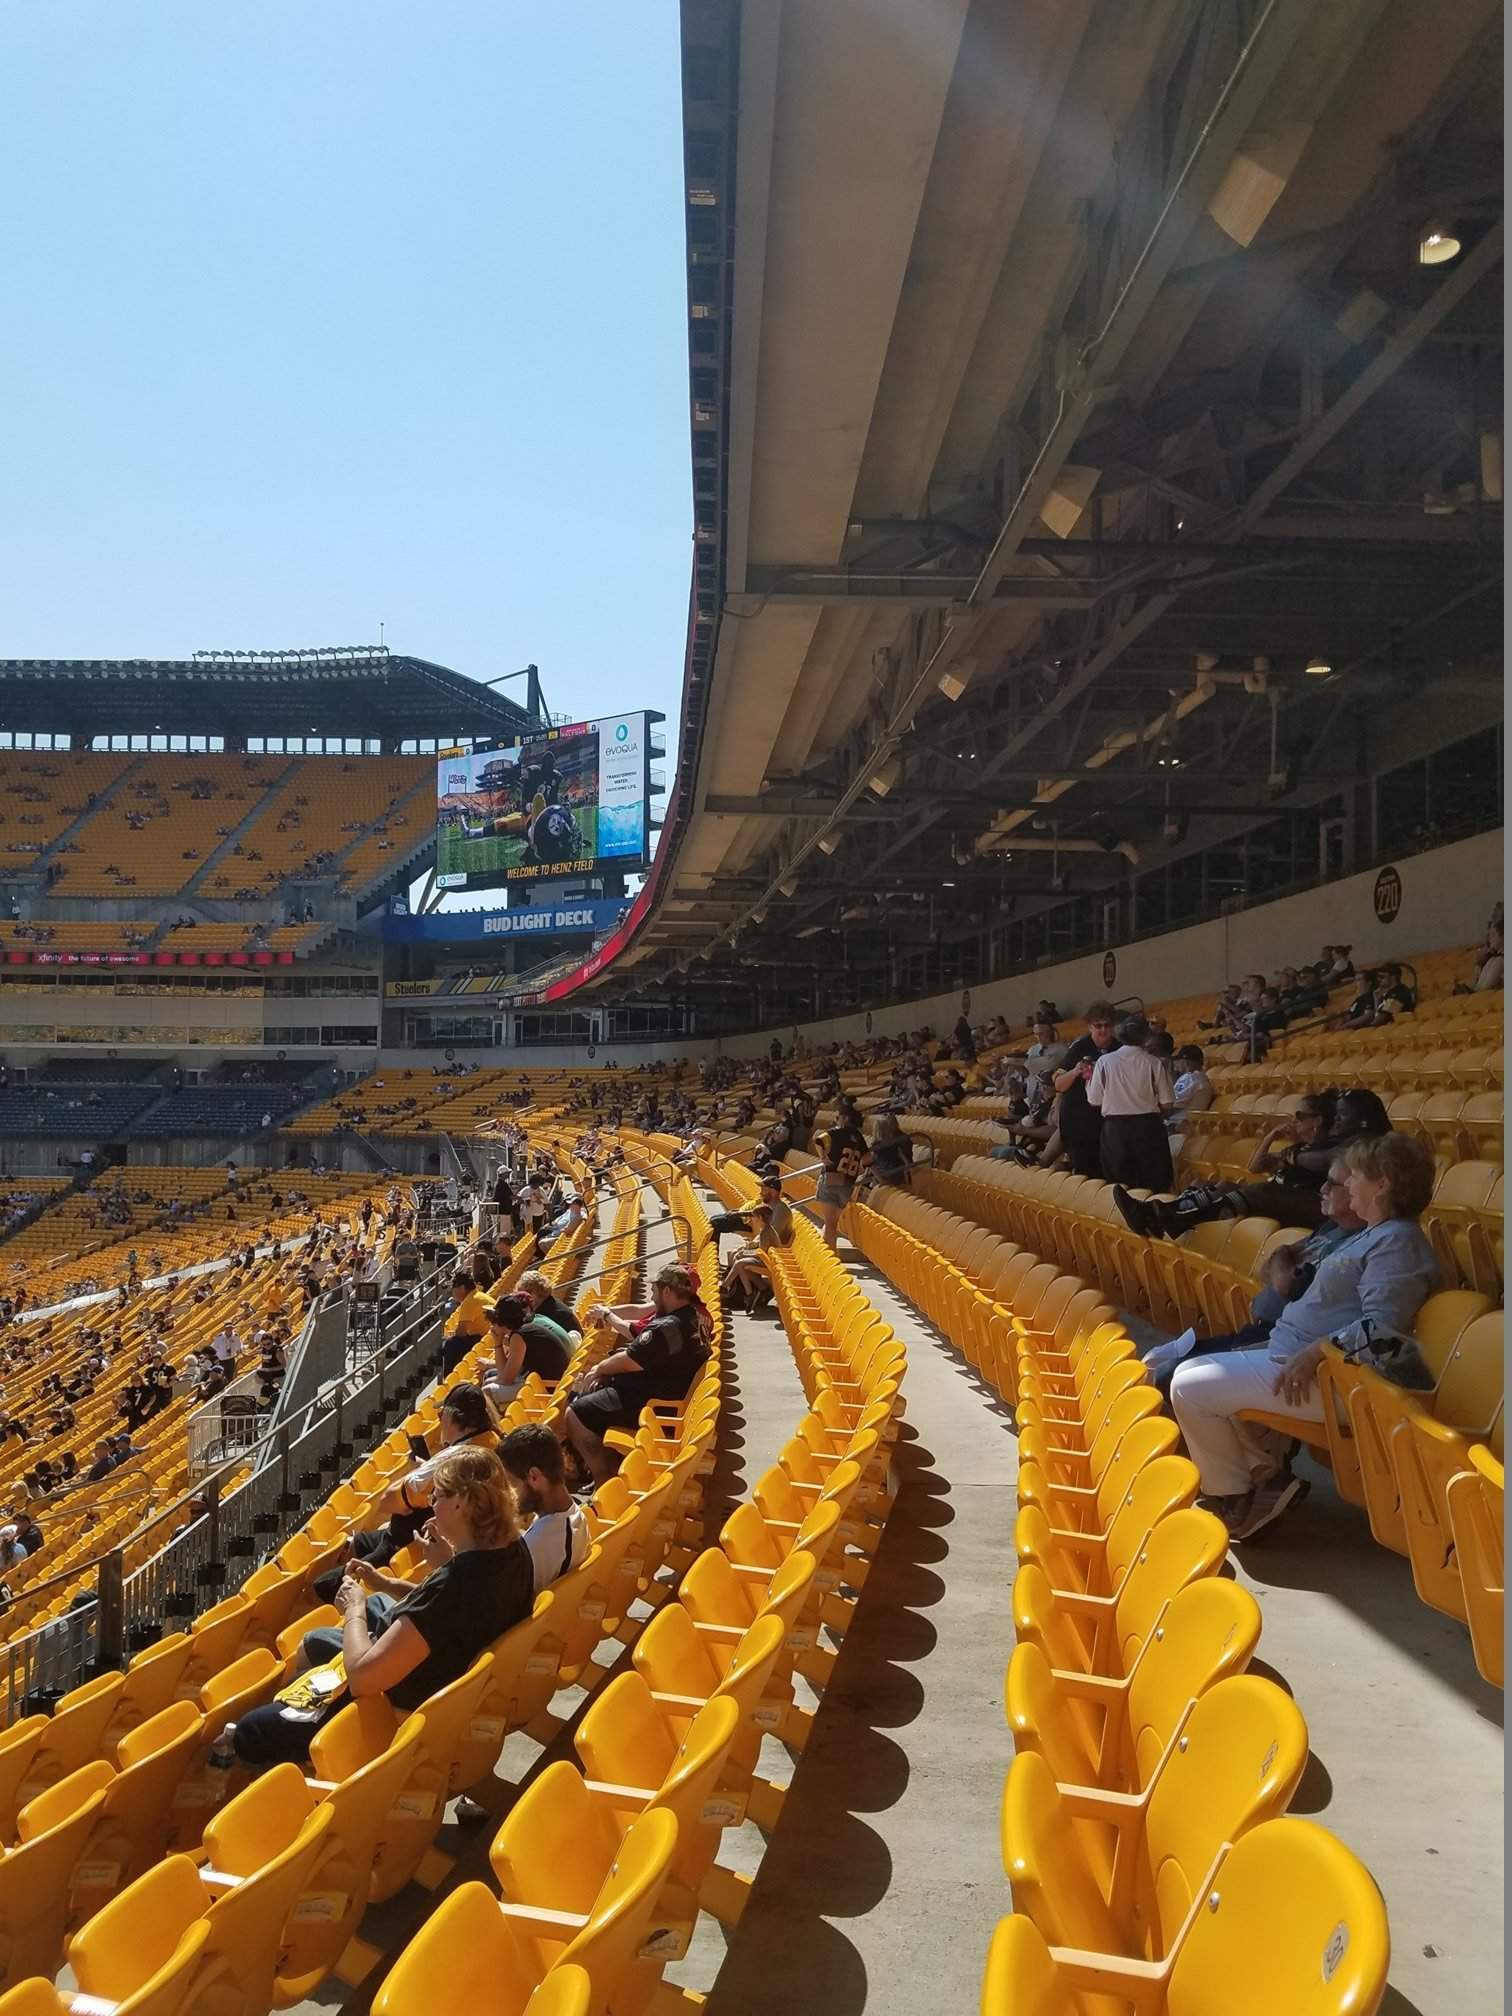 Related Photos From Heinz Field